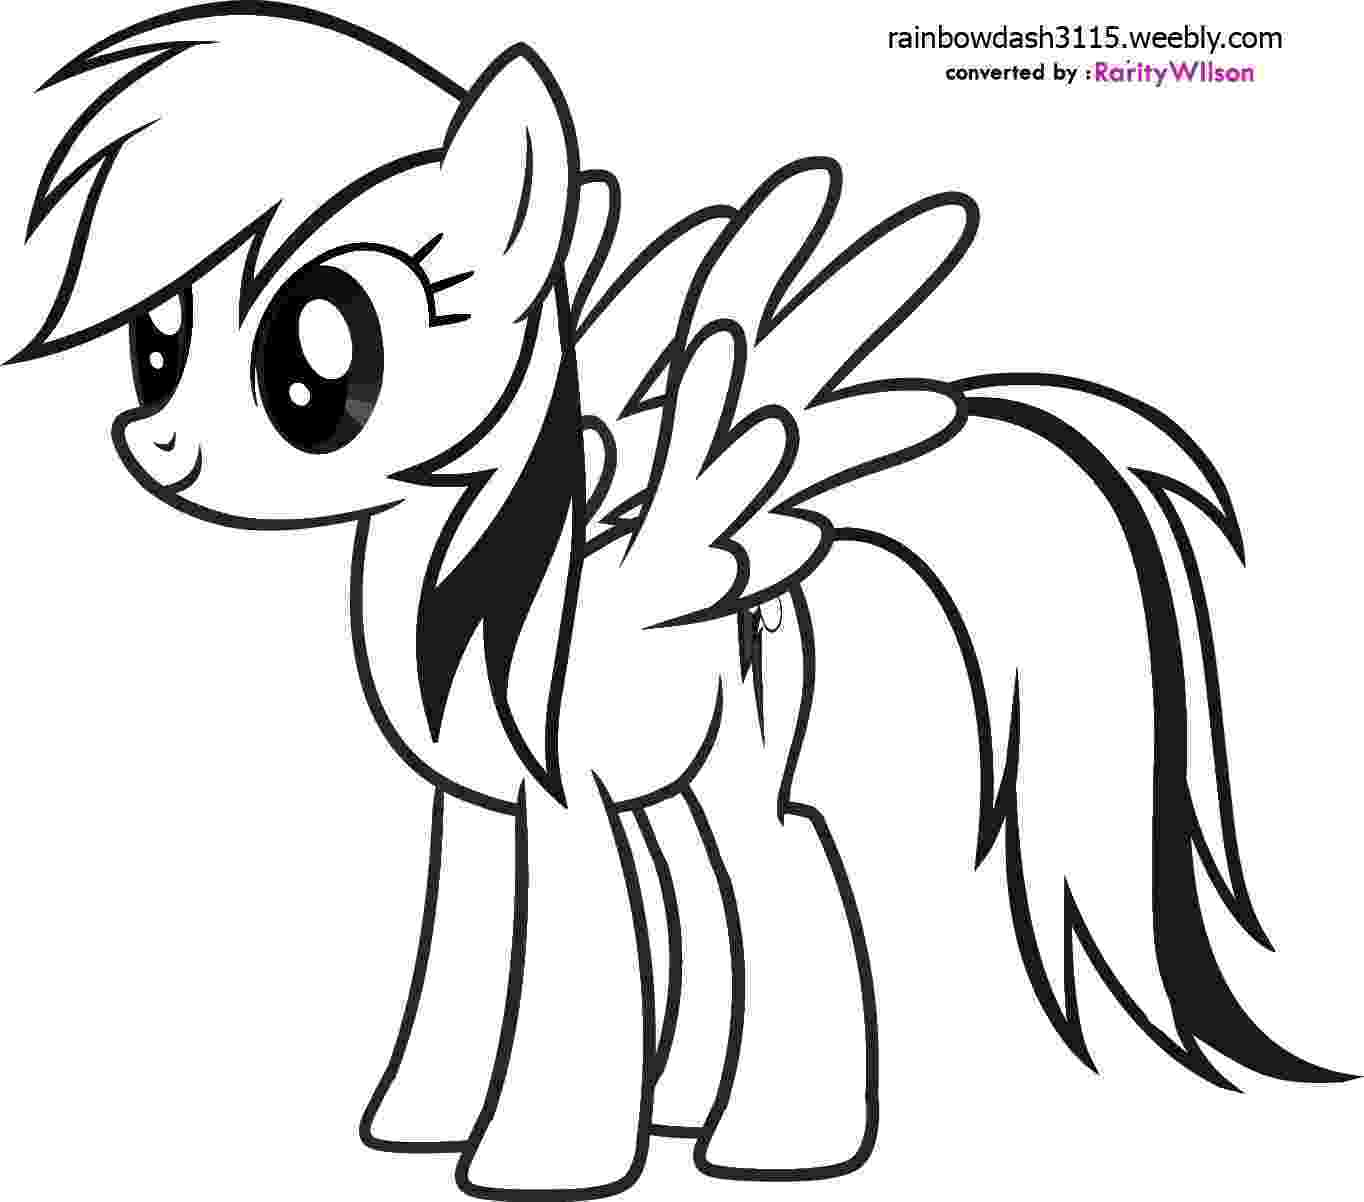 my little pony friendship is magic coloring pages rainbow dash 32 my little pony friendship is magic coloring pages pages coloring pony rainbow friendship little dash my magic is